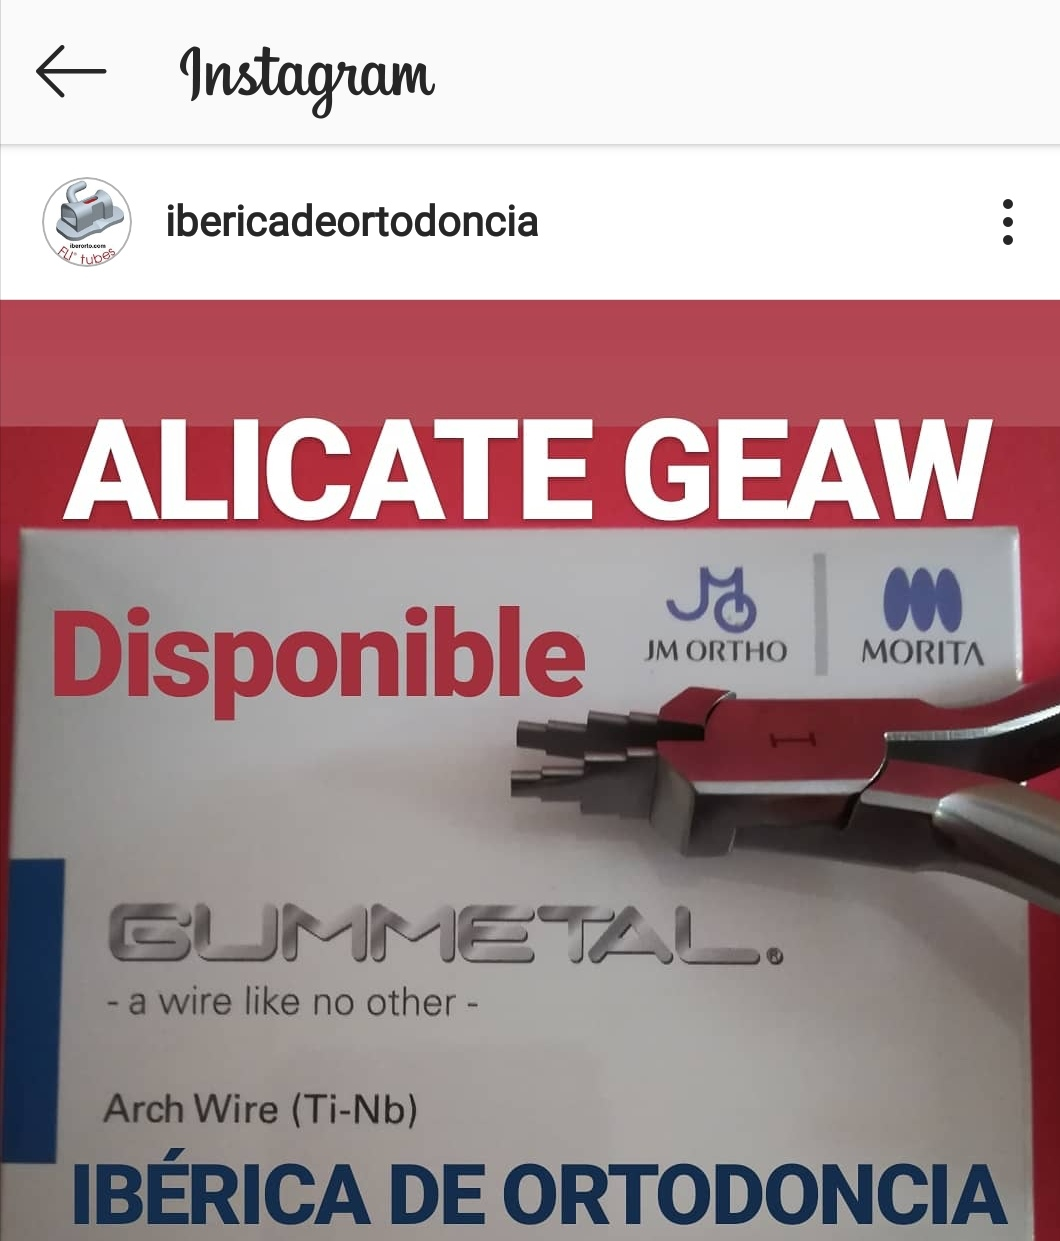 ALICATEGEAWINSTAGRAM